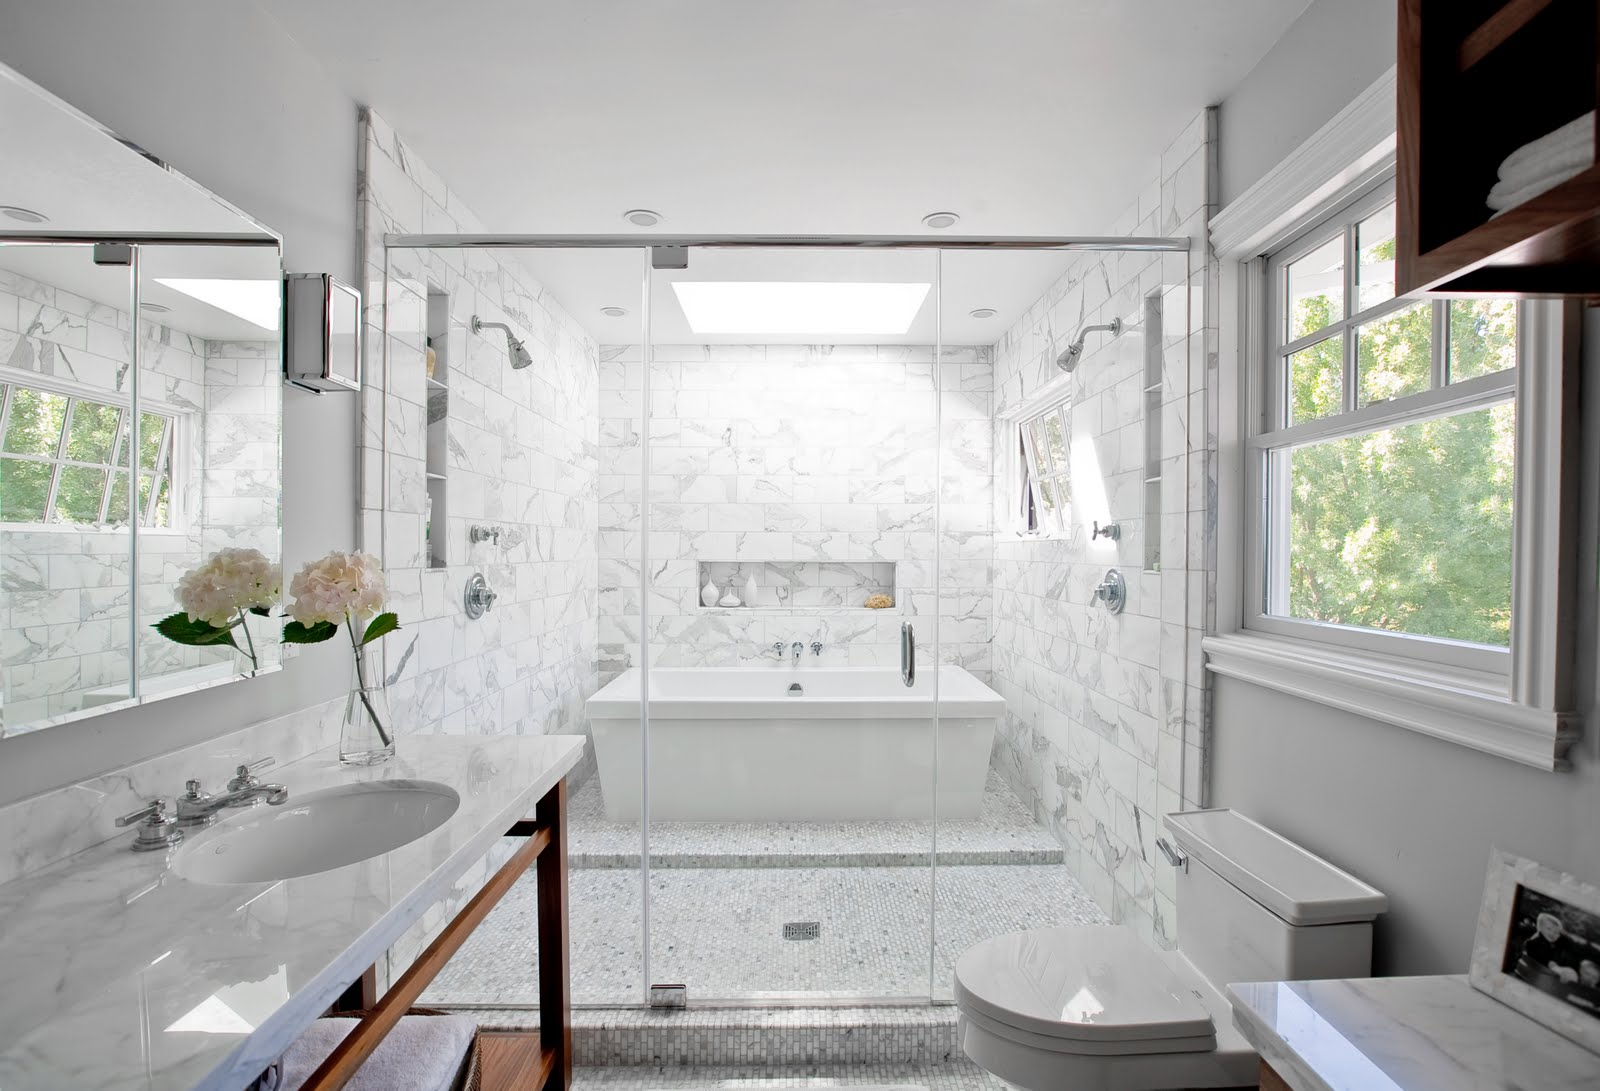 COCOCOZY: SMART DESIGN: A BATH TUB INSIDE A MARBLE SHOWER - OH ...